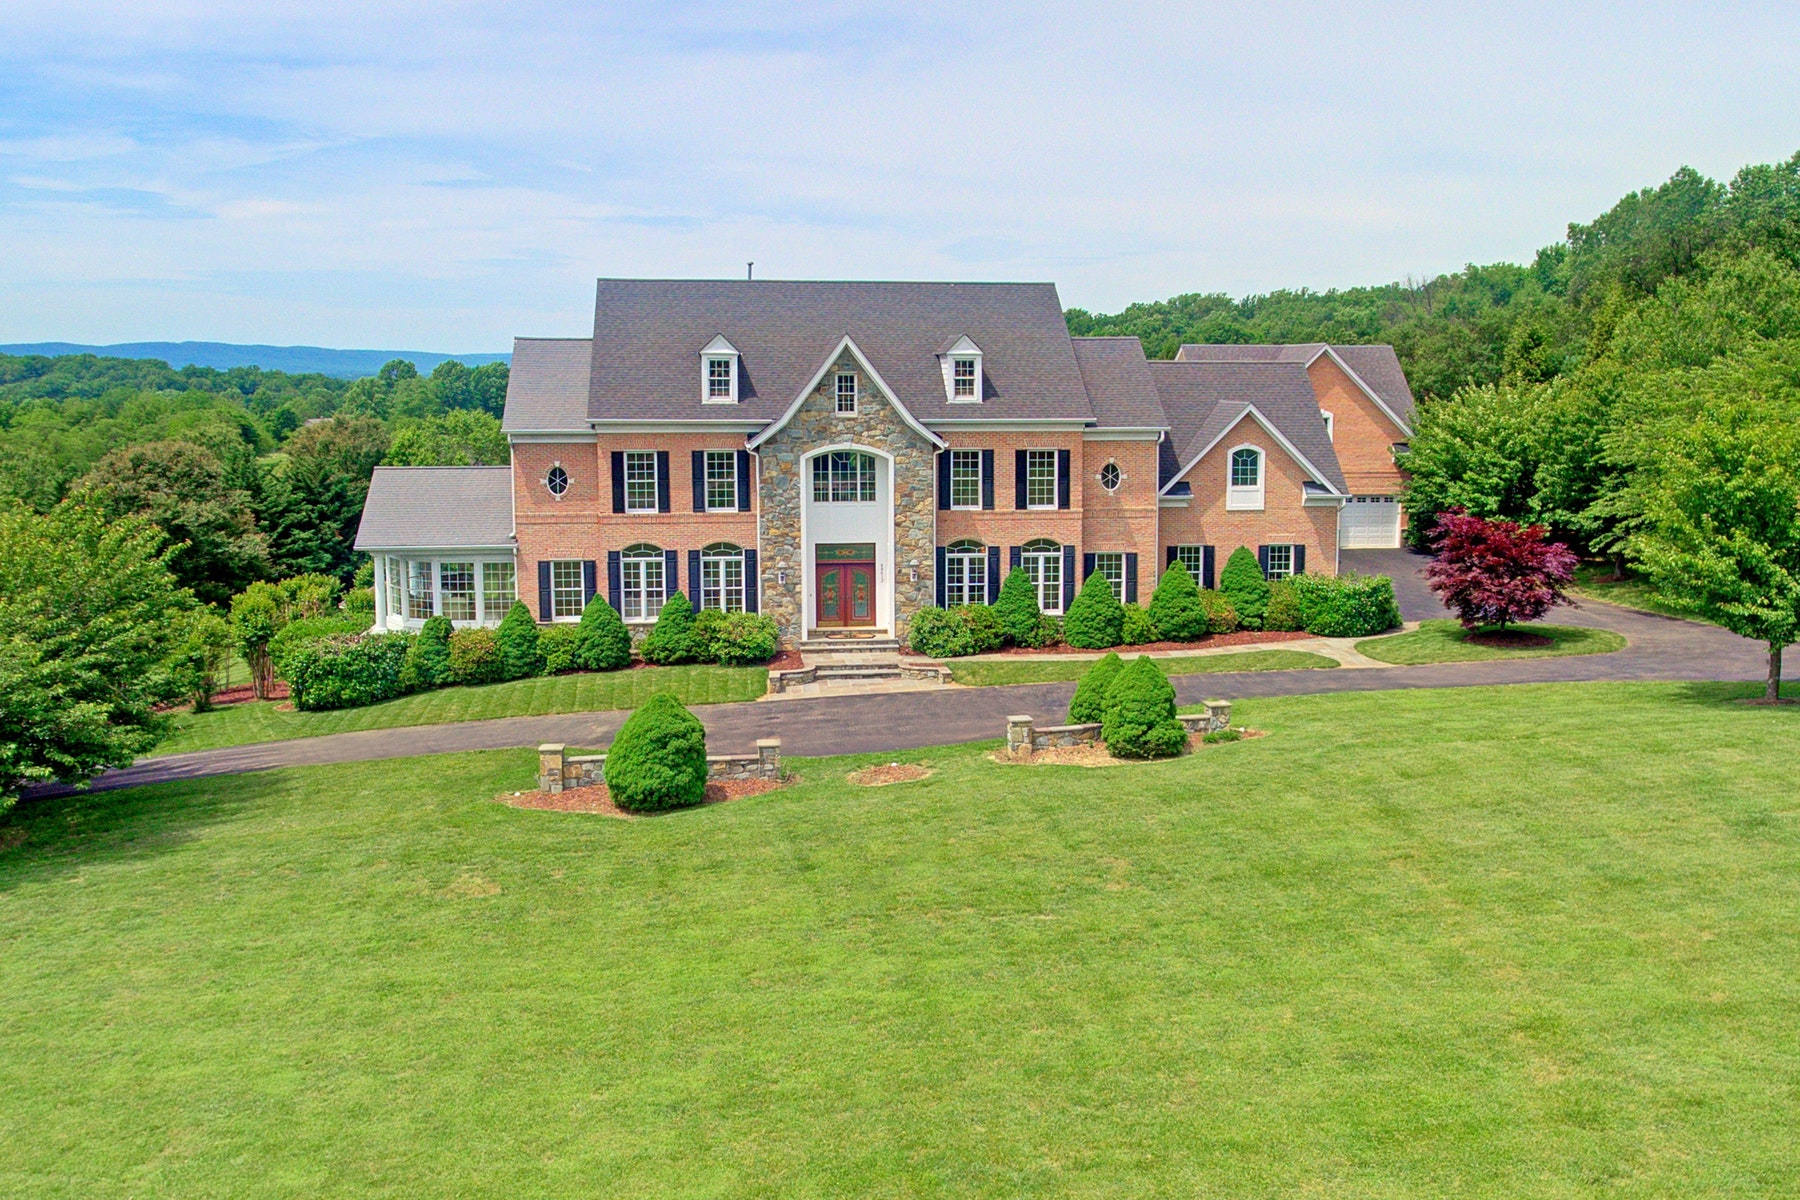 Single Family Homes for Active at Spectacular Views on Spectacular Bid Place 40412 Spectacular Bid Place Leesburg, Virginia 20176 United States